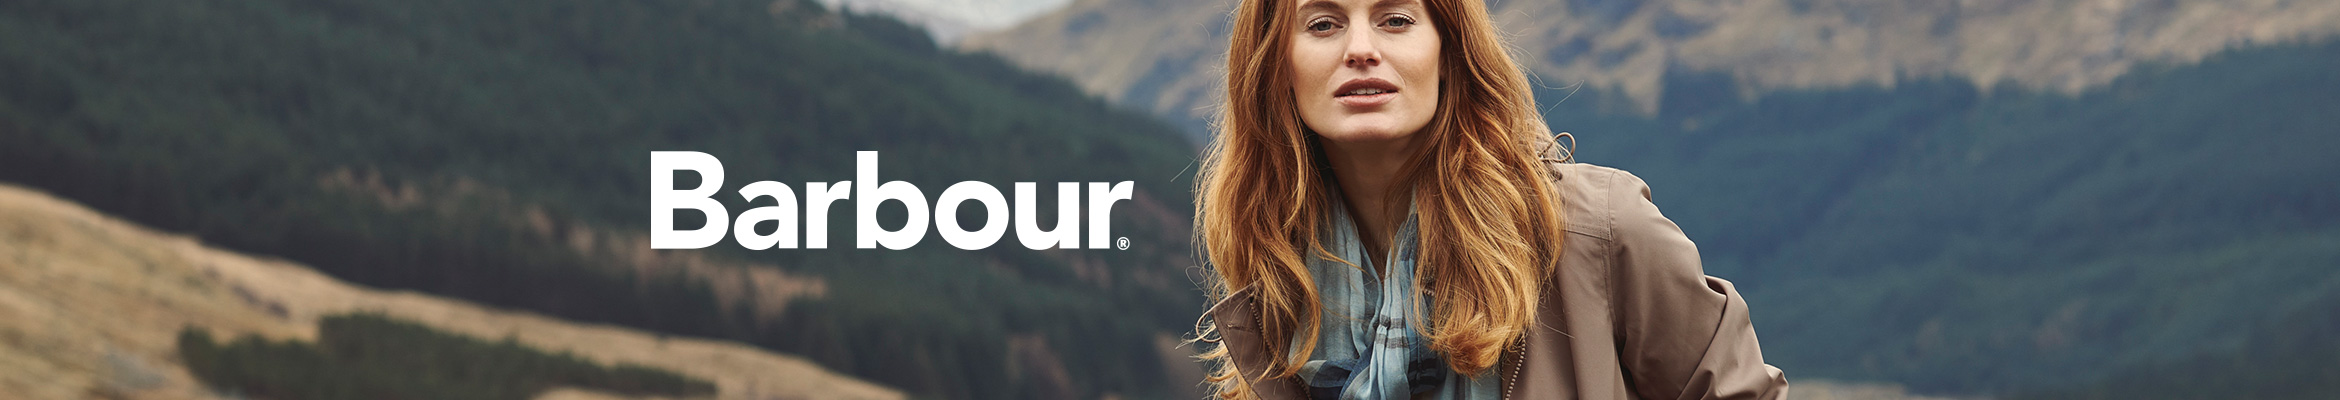 Barbour_W